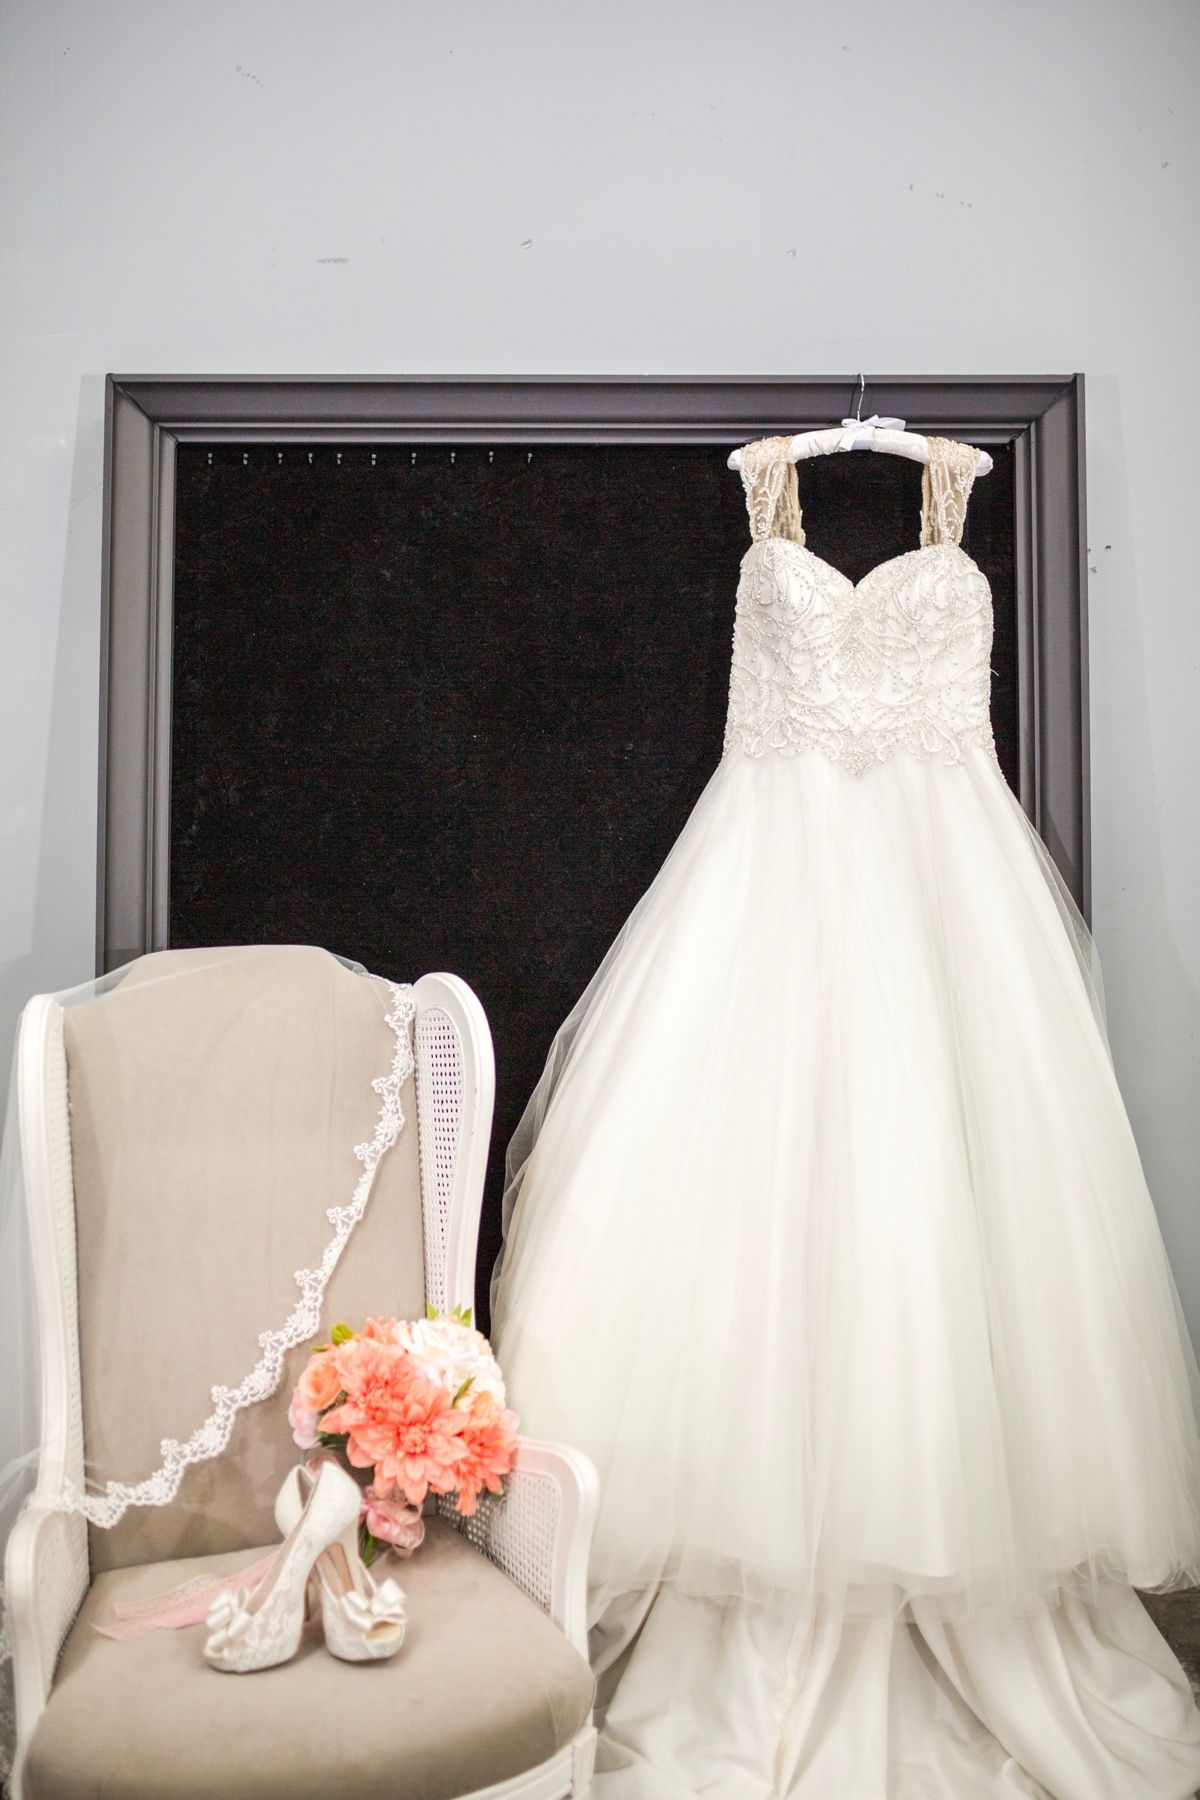 Walk Down The Aisle In This Princess Tulle Bridal Gown Rental Wedding Dresses Wedding Dresses Bridal Gowns